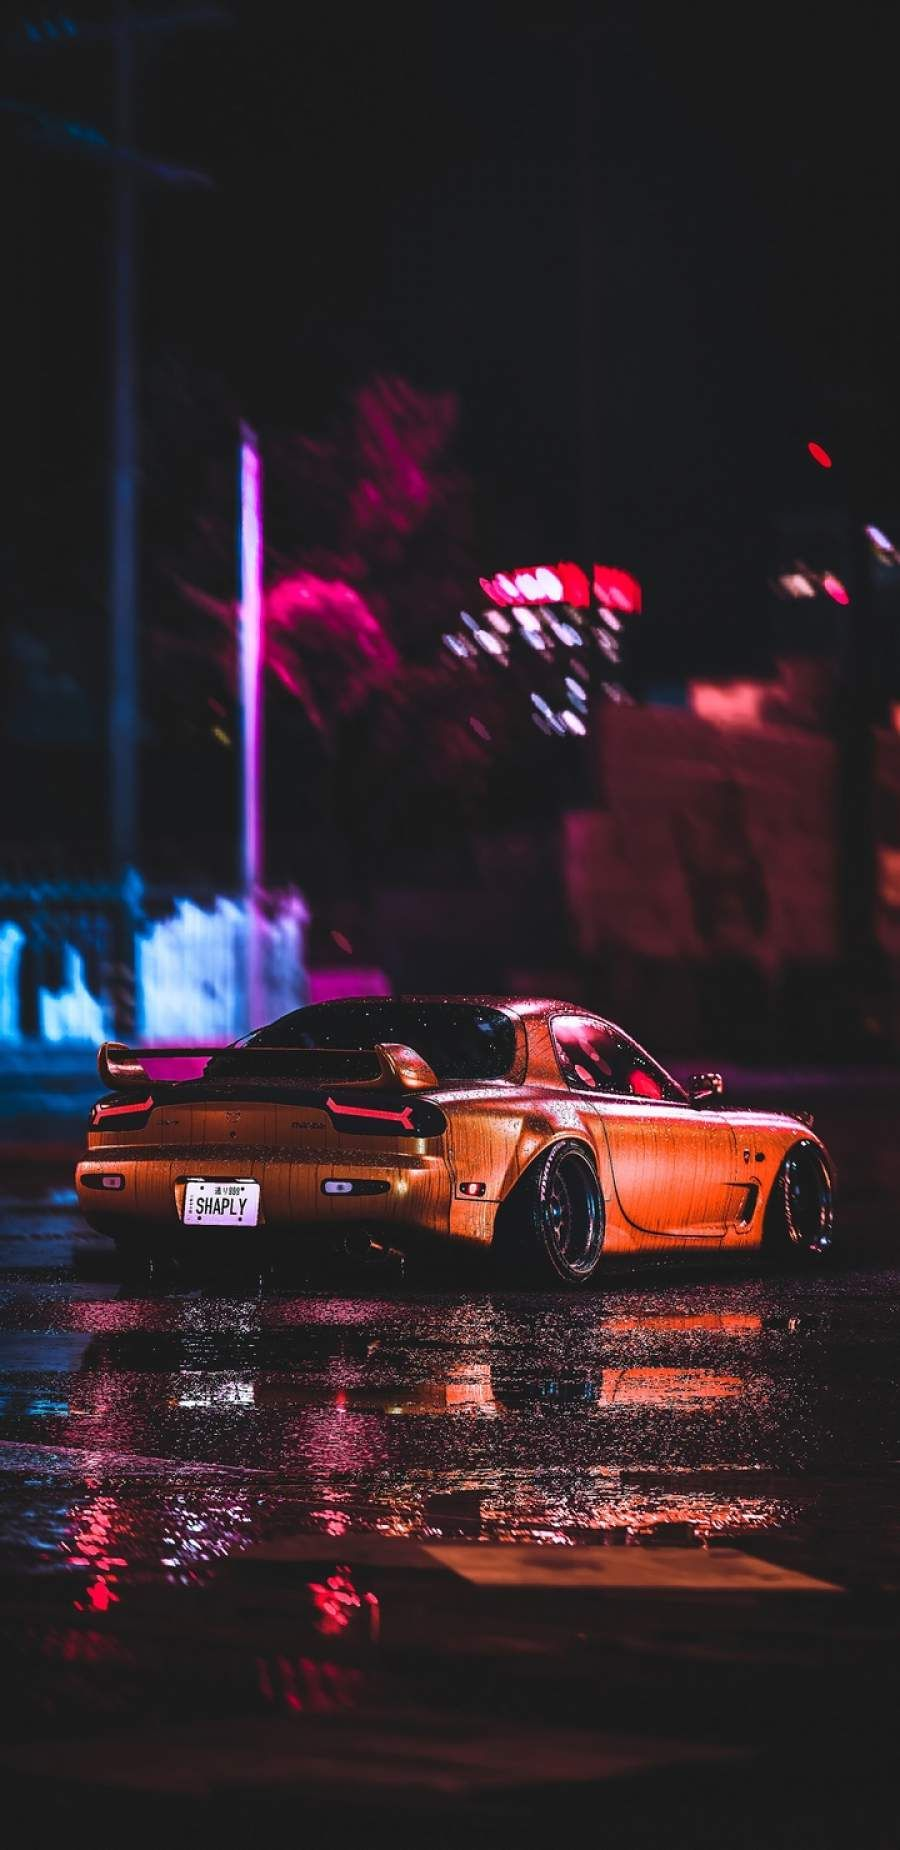 Mazda RX7 Night iPhone Wallpaper in 2020